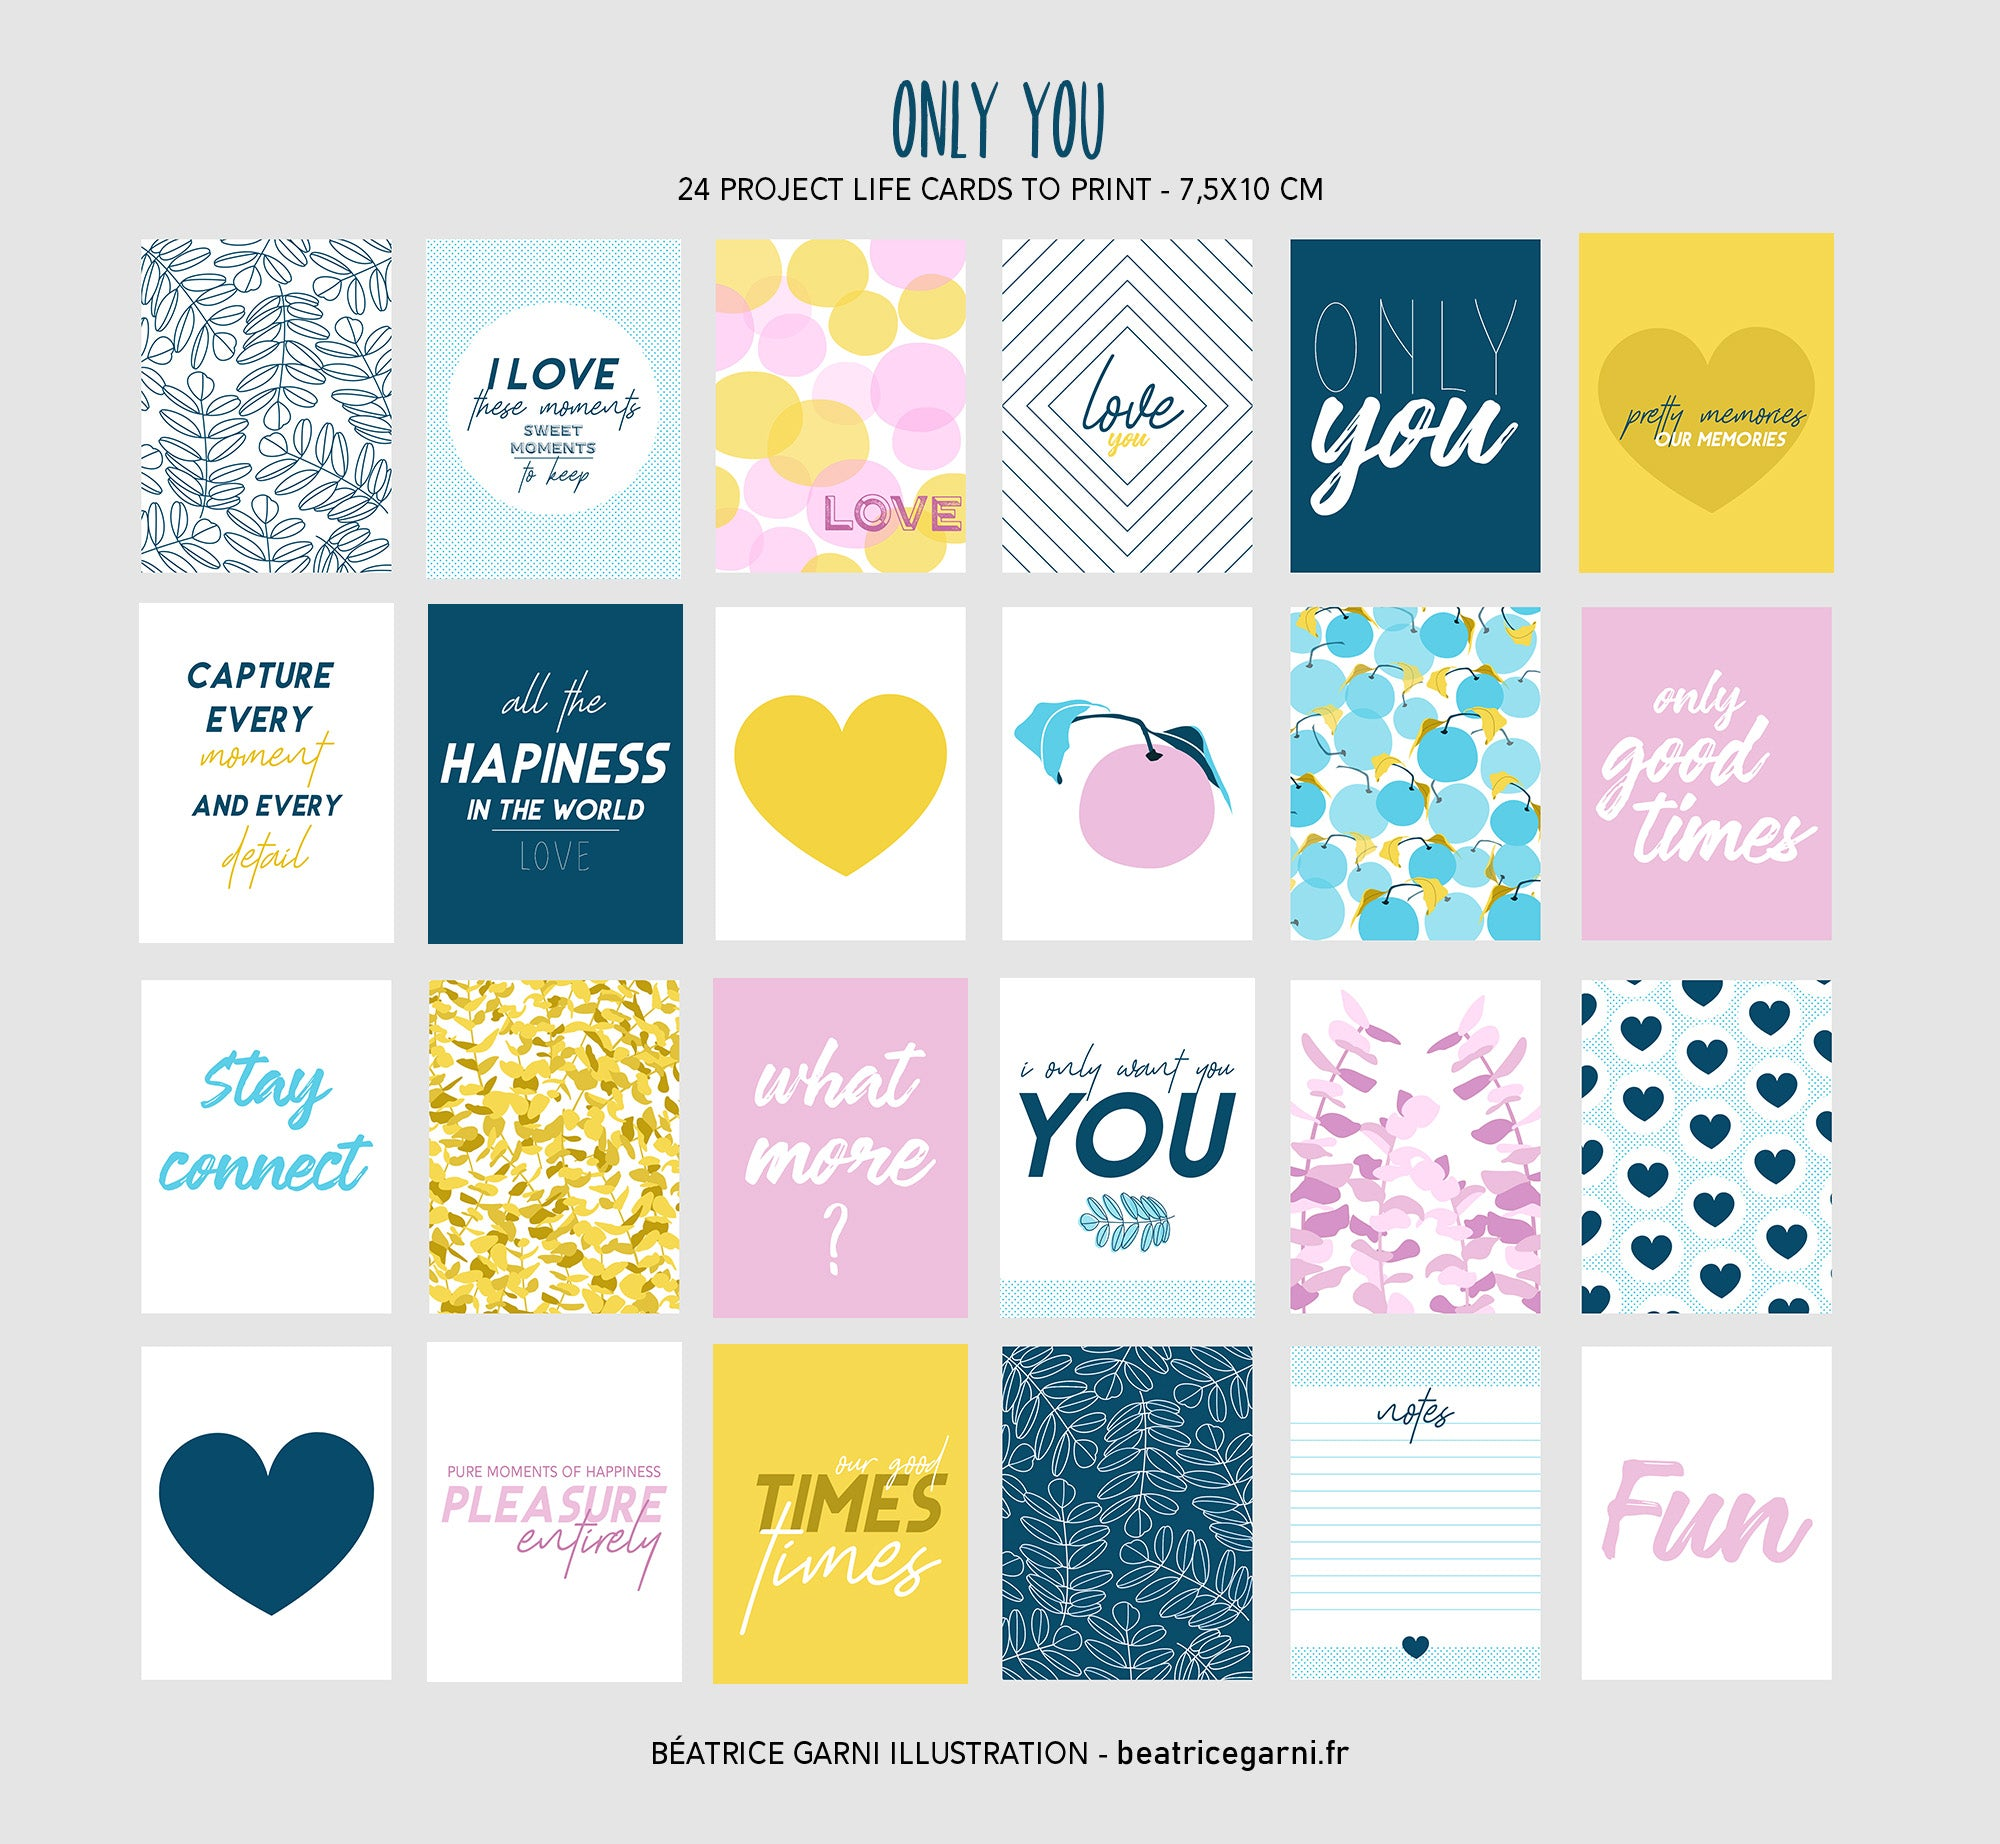 Project Life Cards to print - Only You